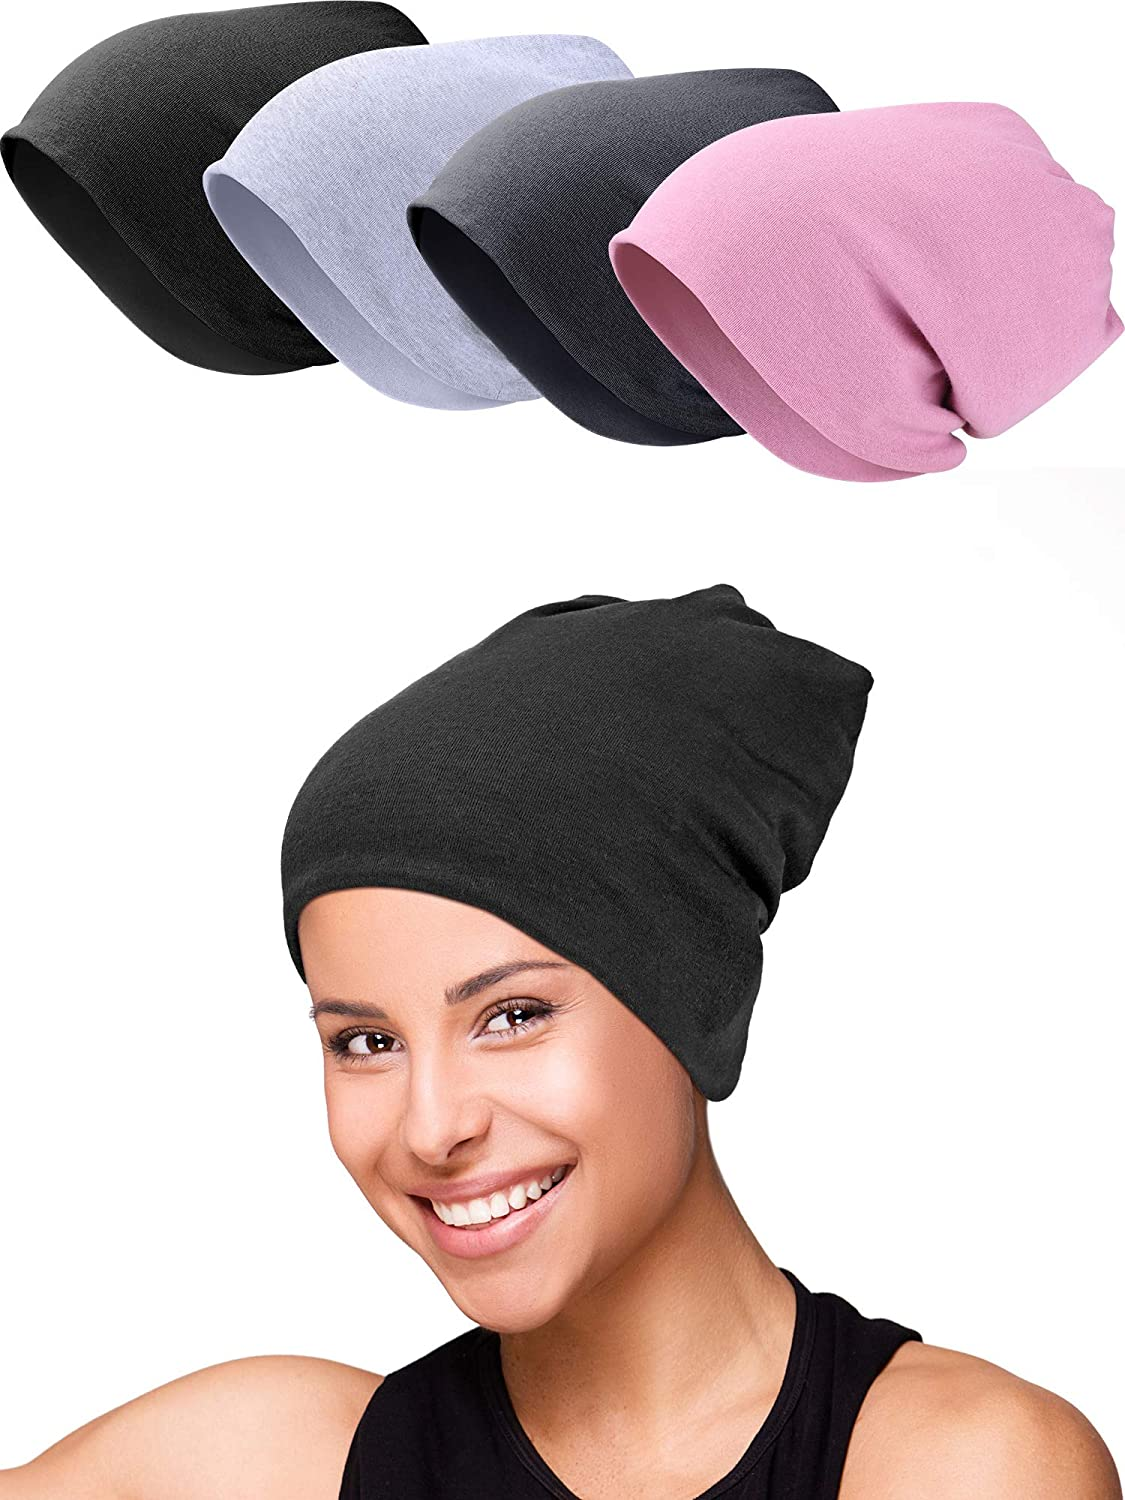 4 Pieces Unisex Sleep Hat Slouchy Beanie Caps Bamboo Cotton Slap Headwear, 4 Colors